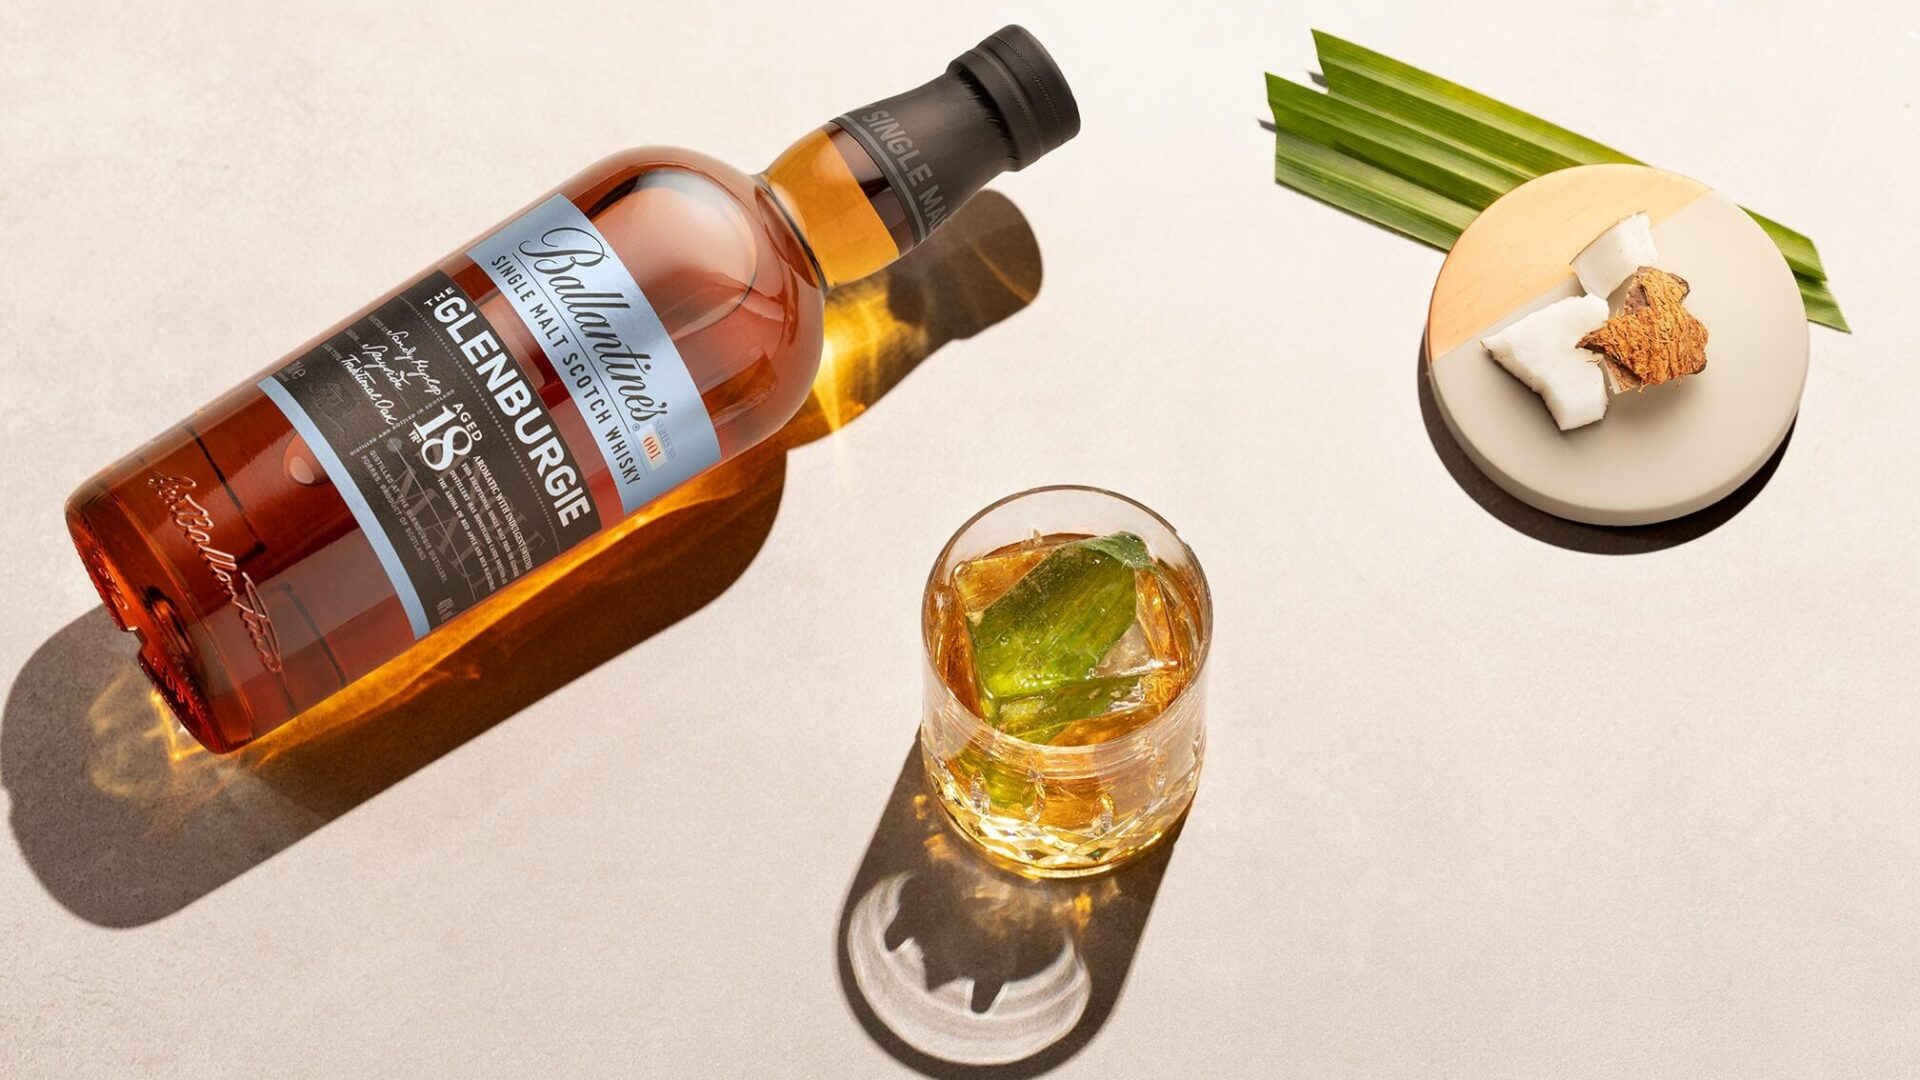 Glenburgie 18 Year Old bottle with coconut and pandan leaf drink